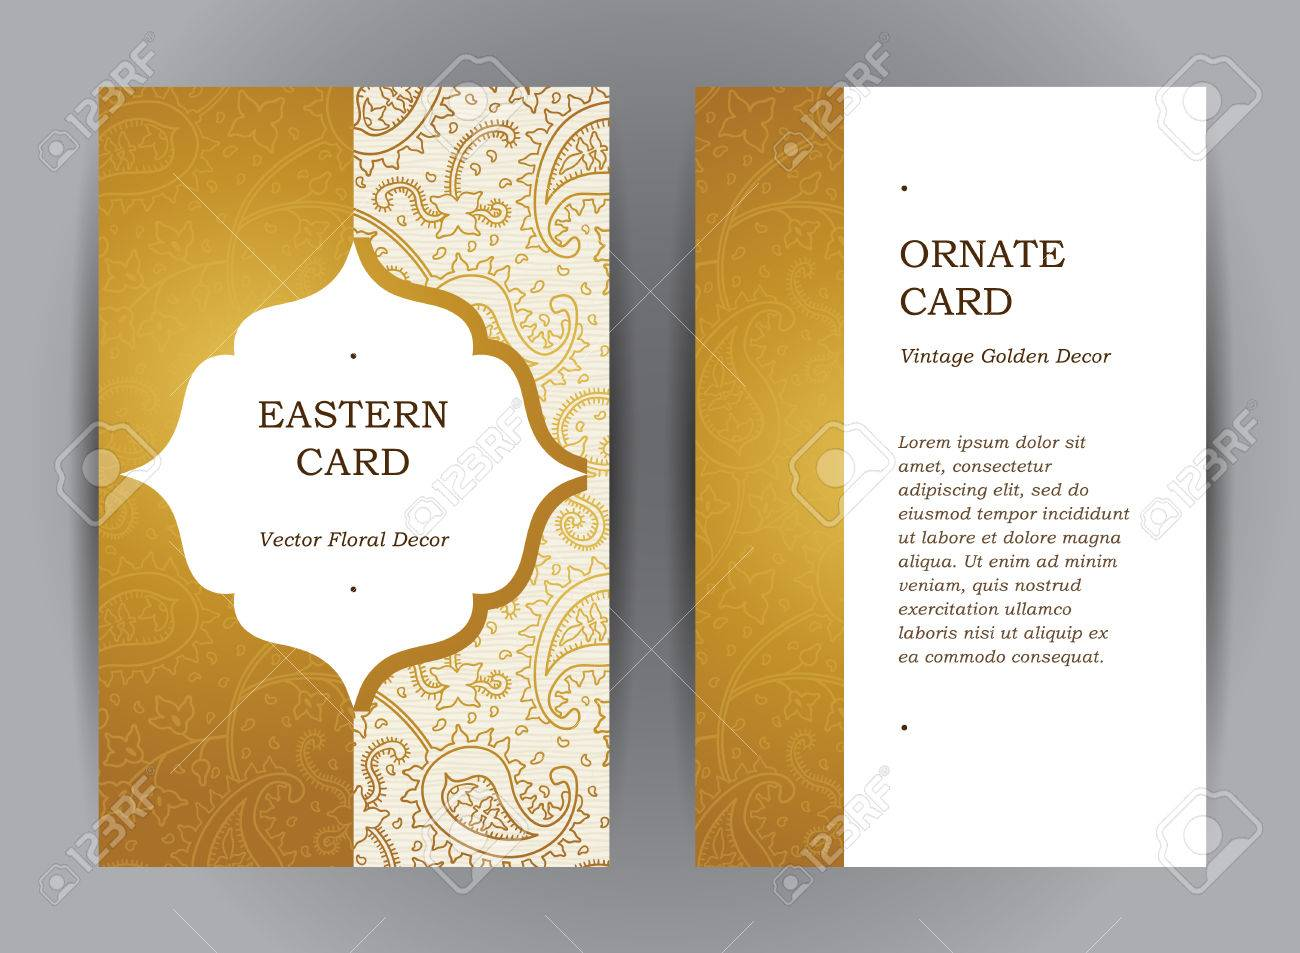 Vector set of ornate vertical vintage cards. Outline golden decor in Eastern style. Template frame for save the date and greeting card, wedding invitation, leaflet, poster. Ornamental border, place for text. - 54592580